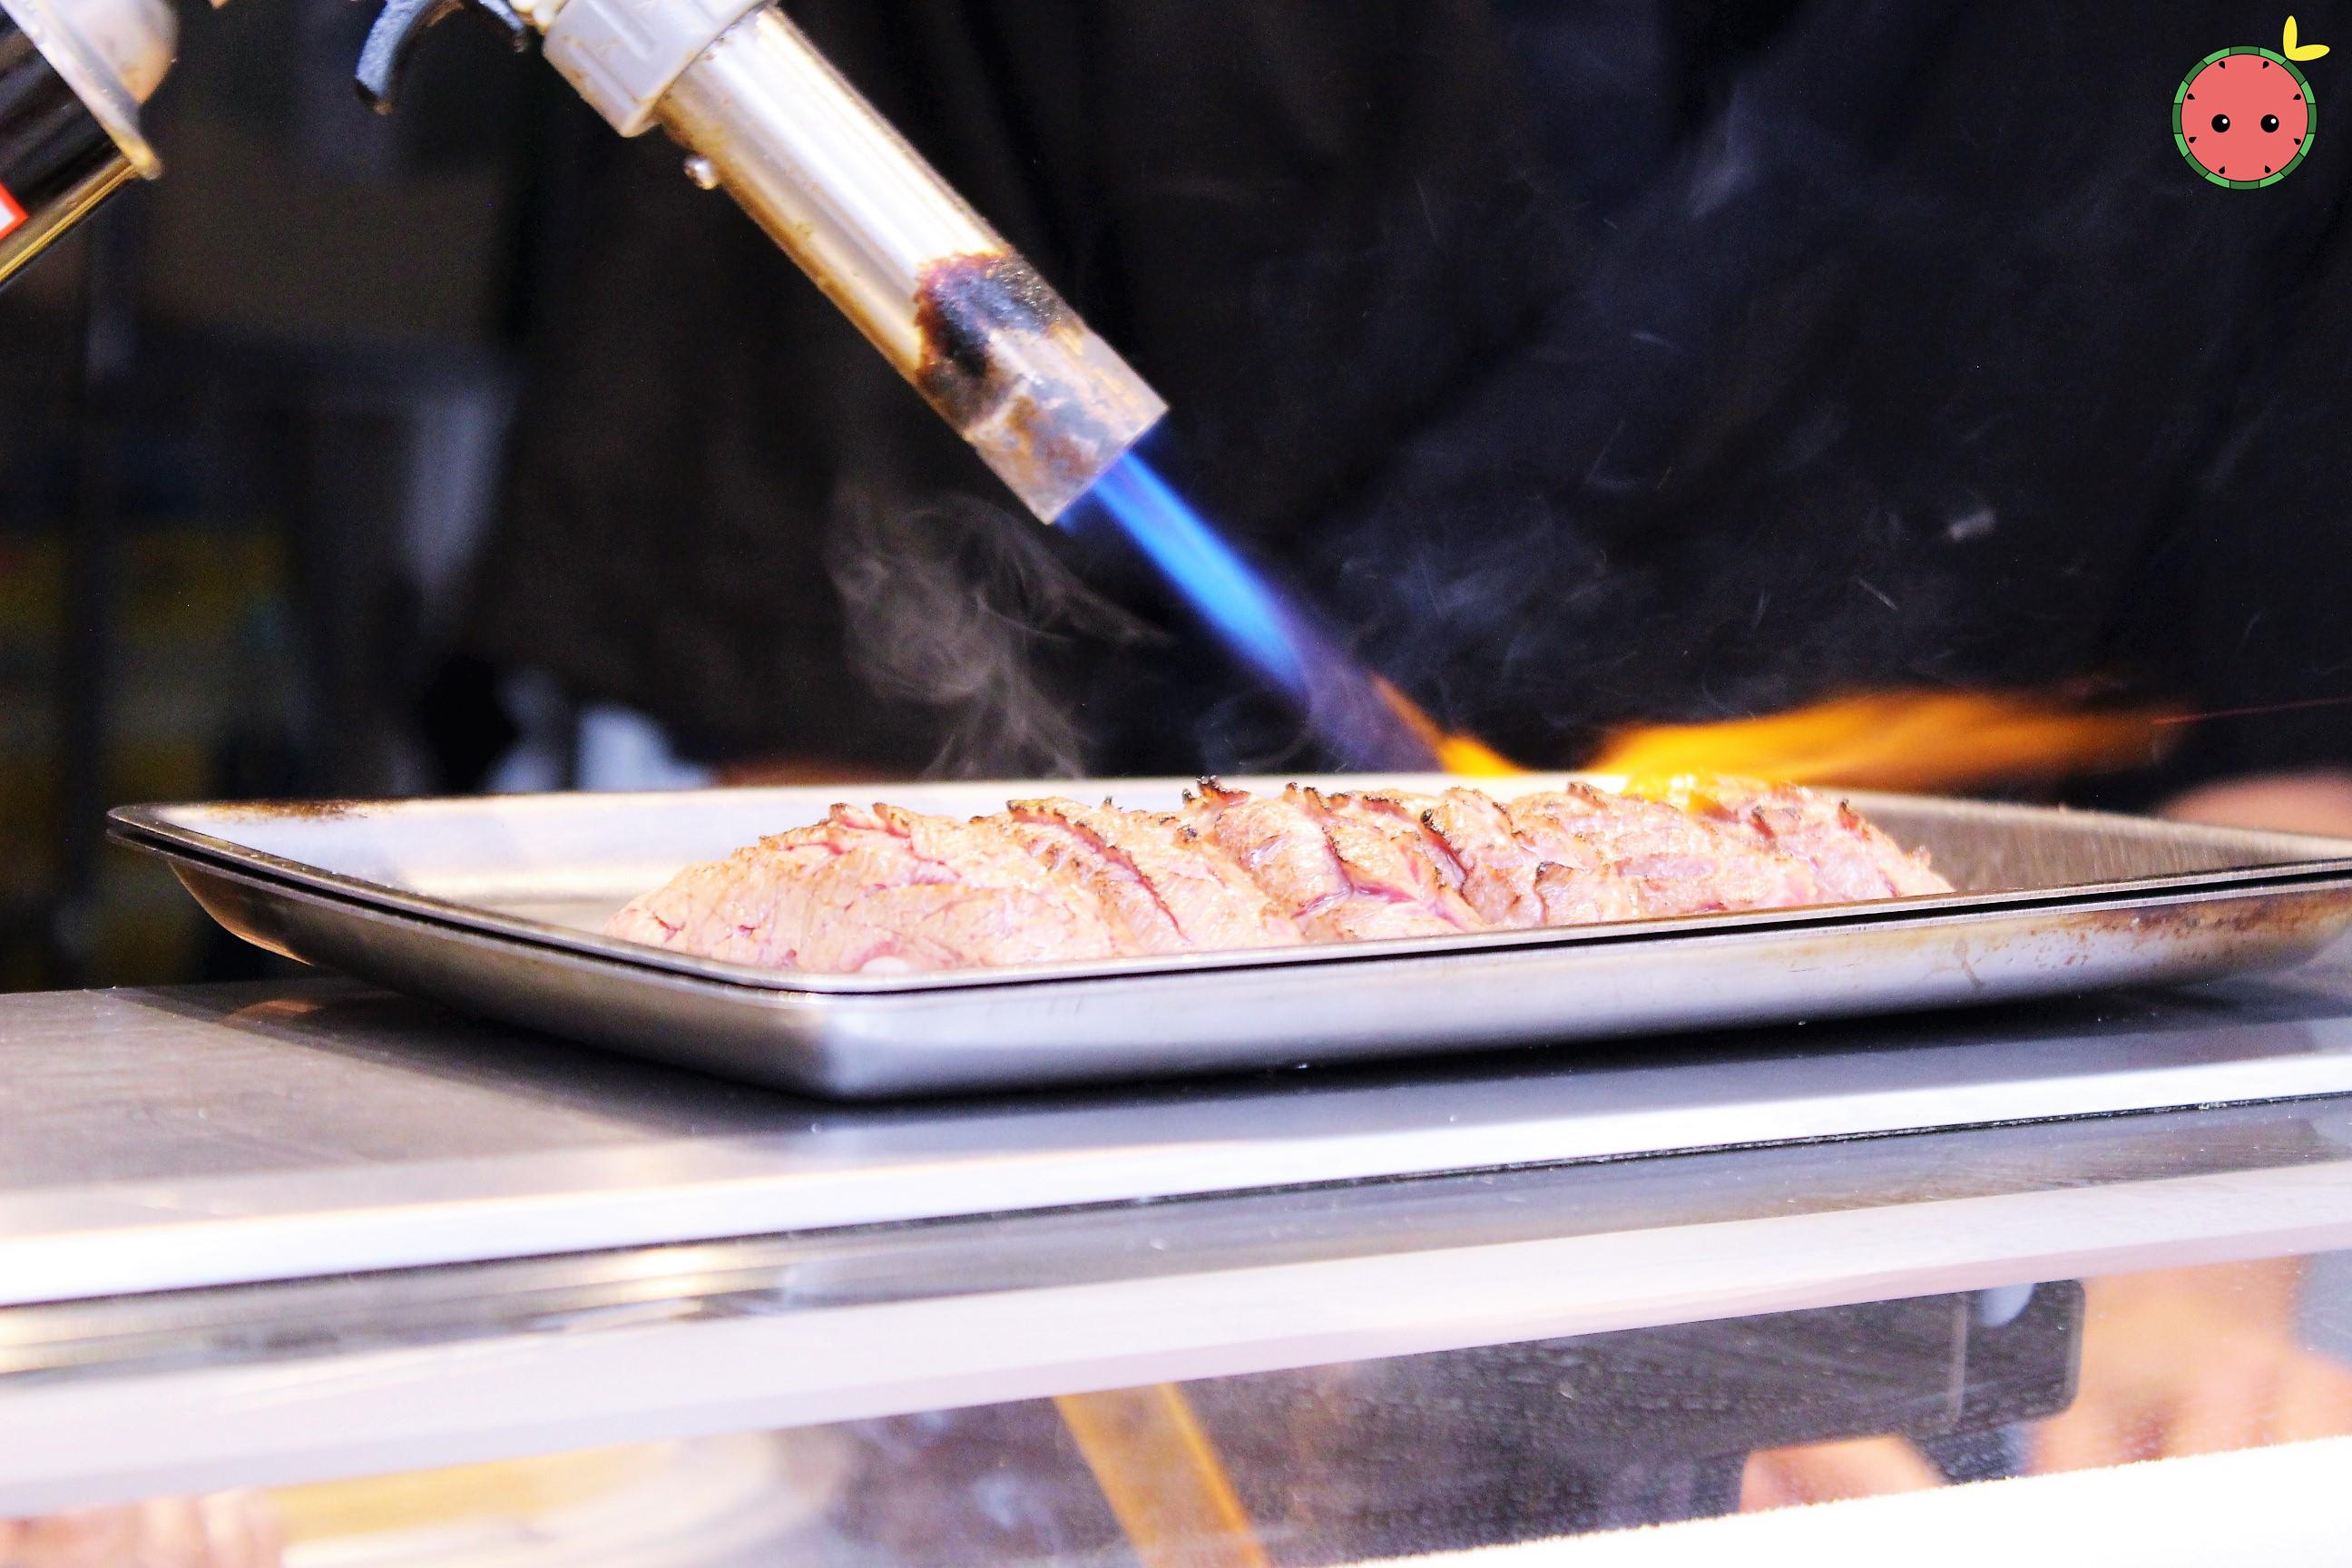 Blow torching the wagyu